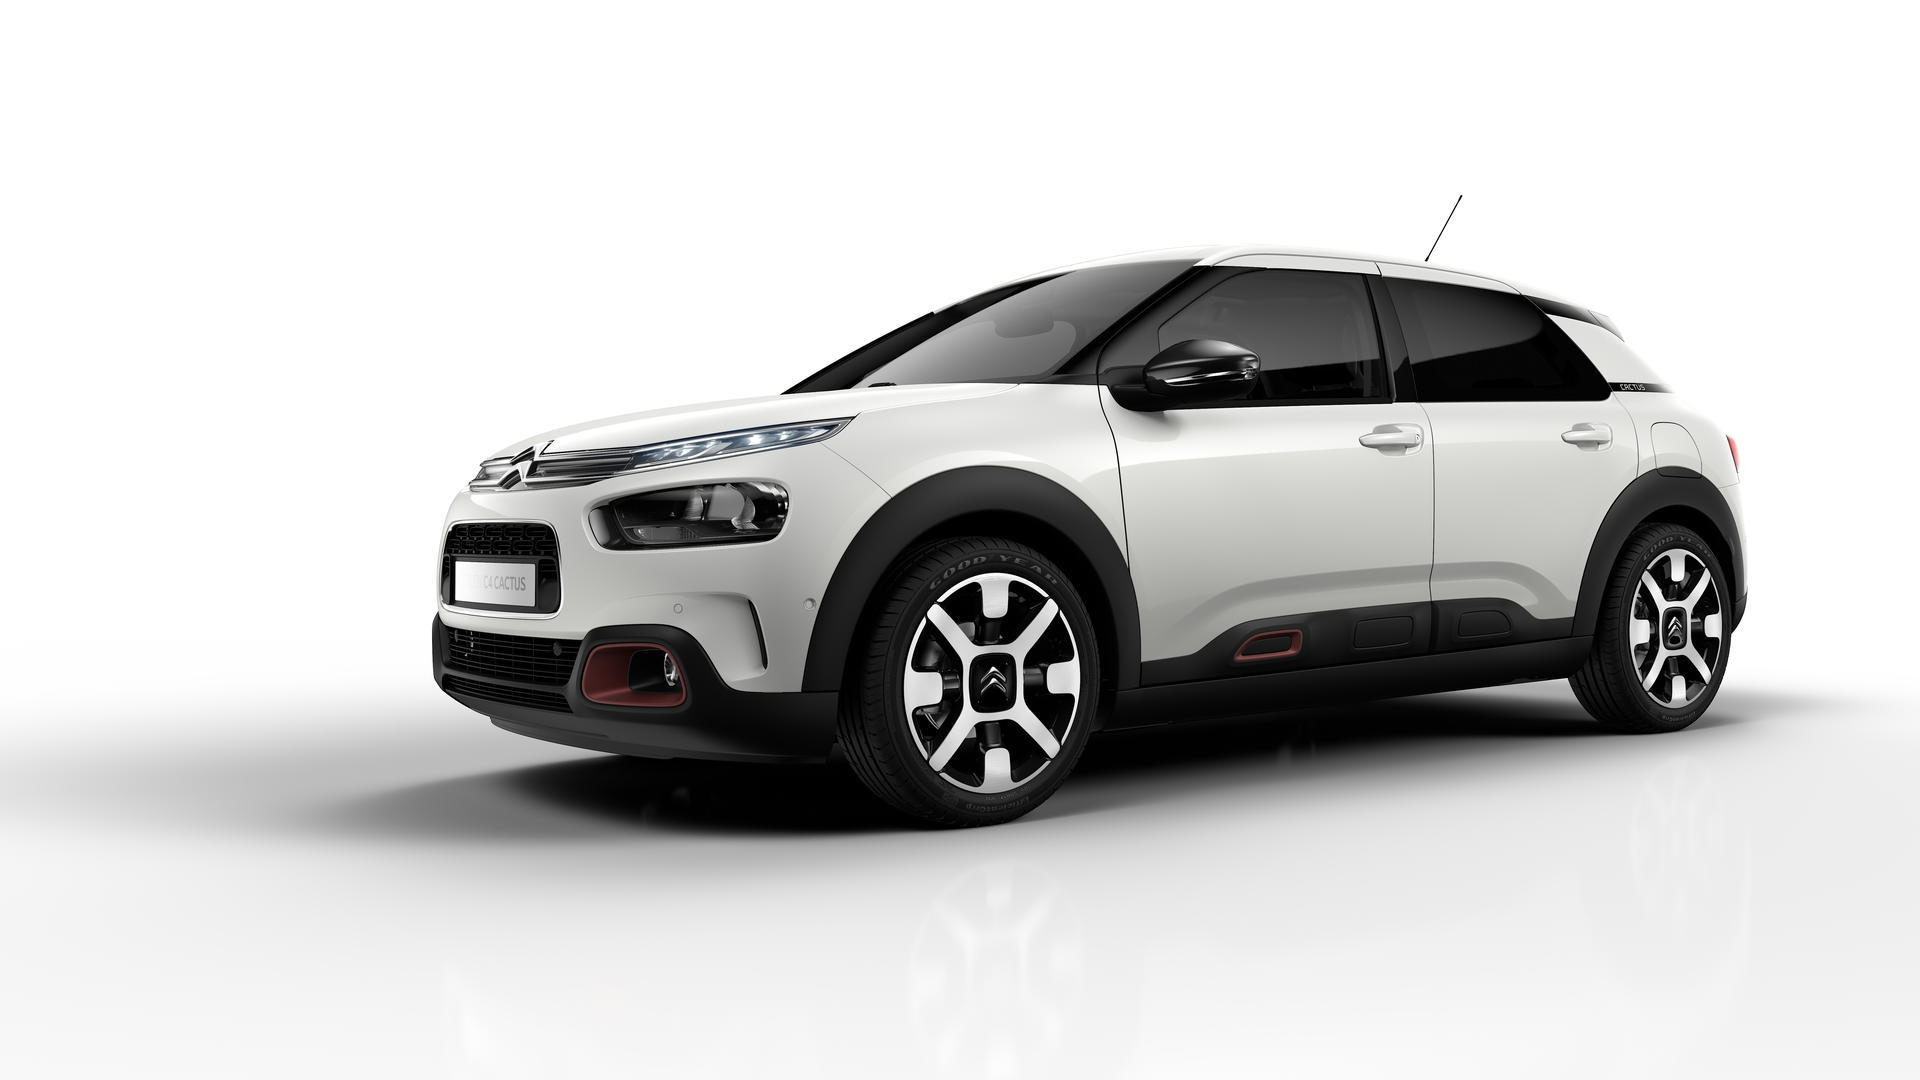 kompakt suv crossover citro n c4 cactus startet im april. Black Bedroom Furniture Sets. Home Design Ideas